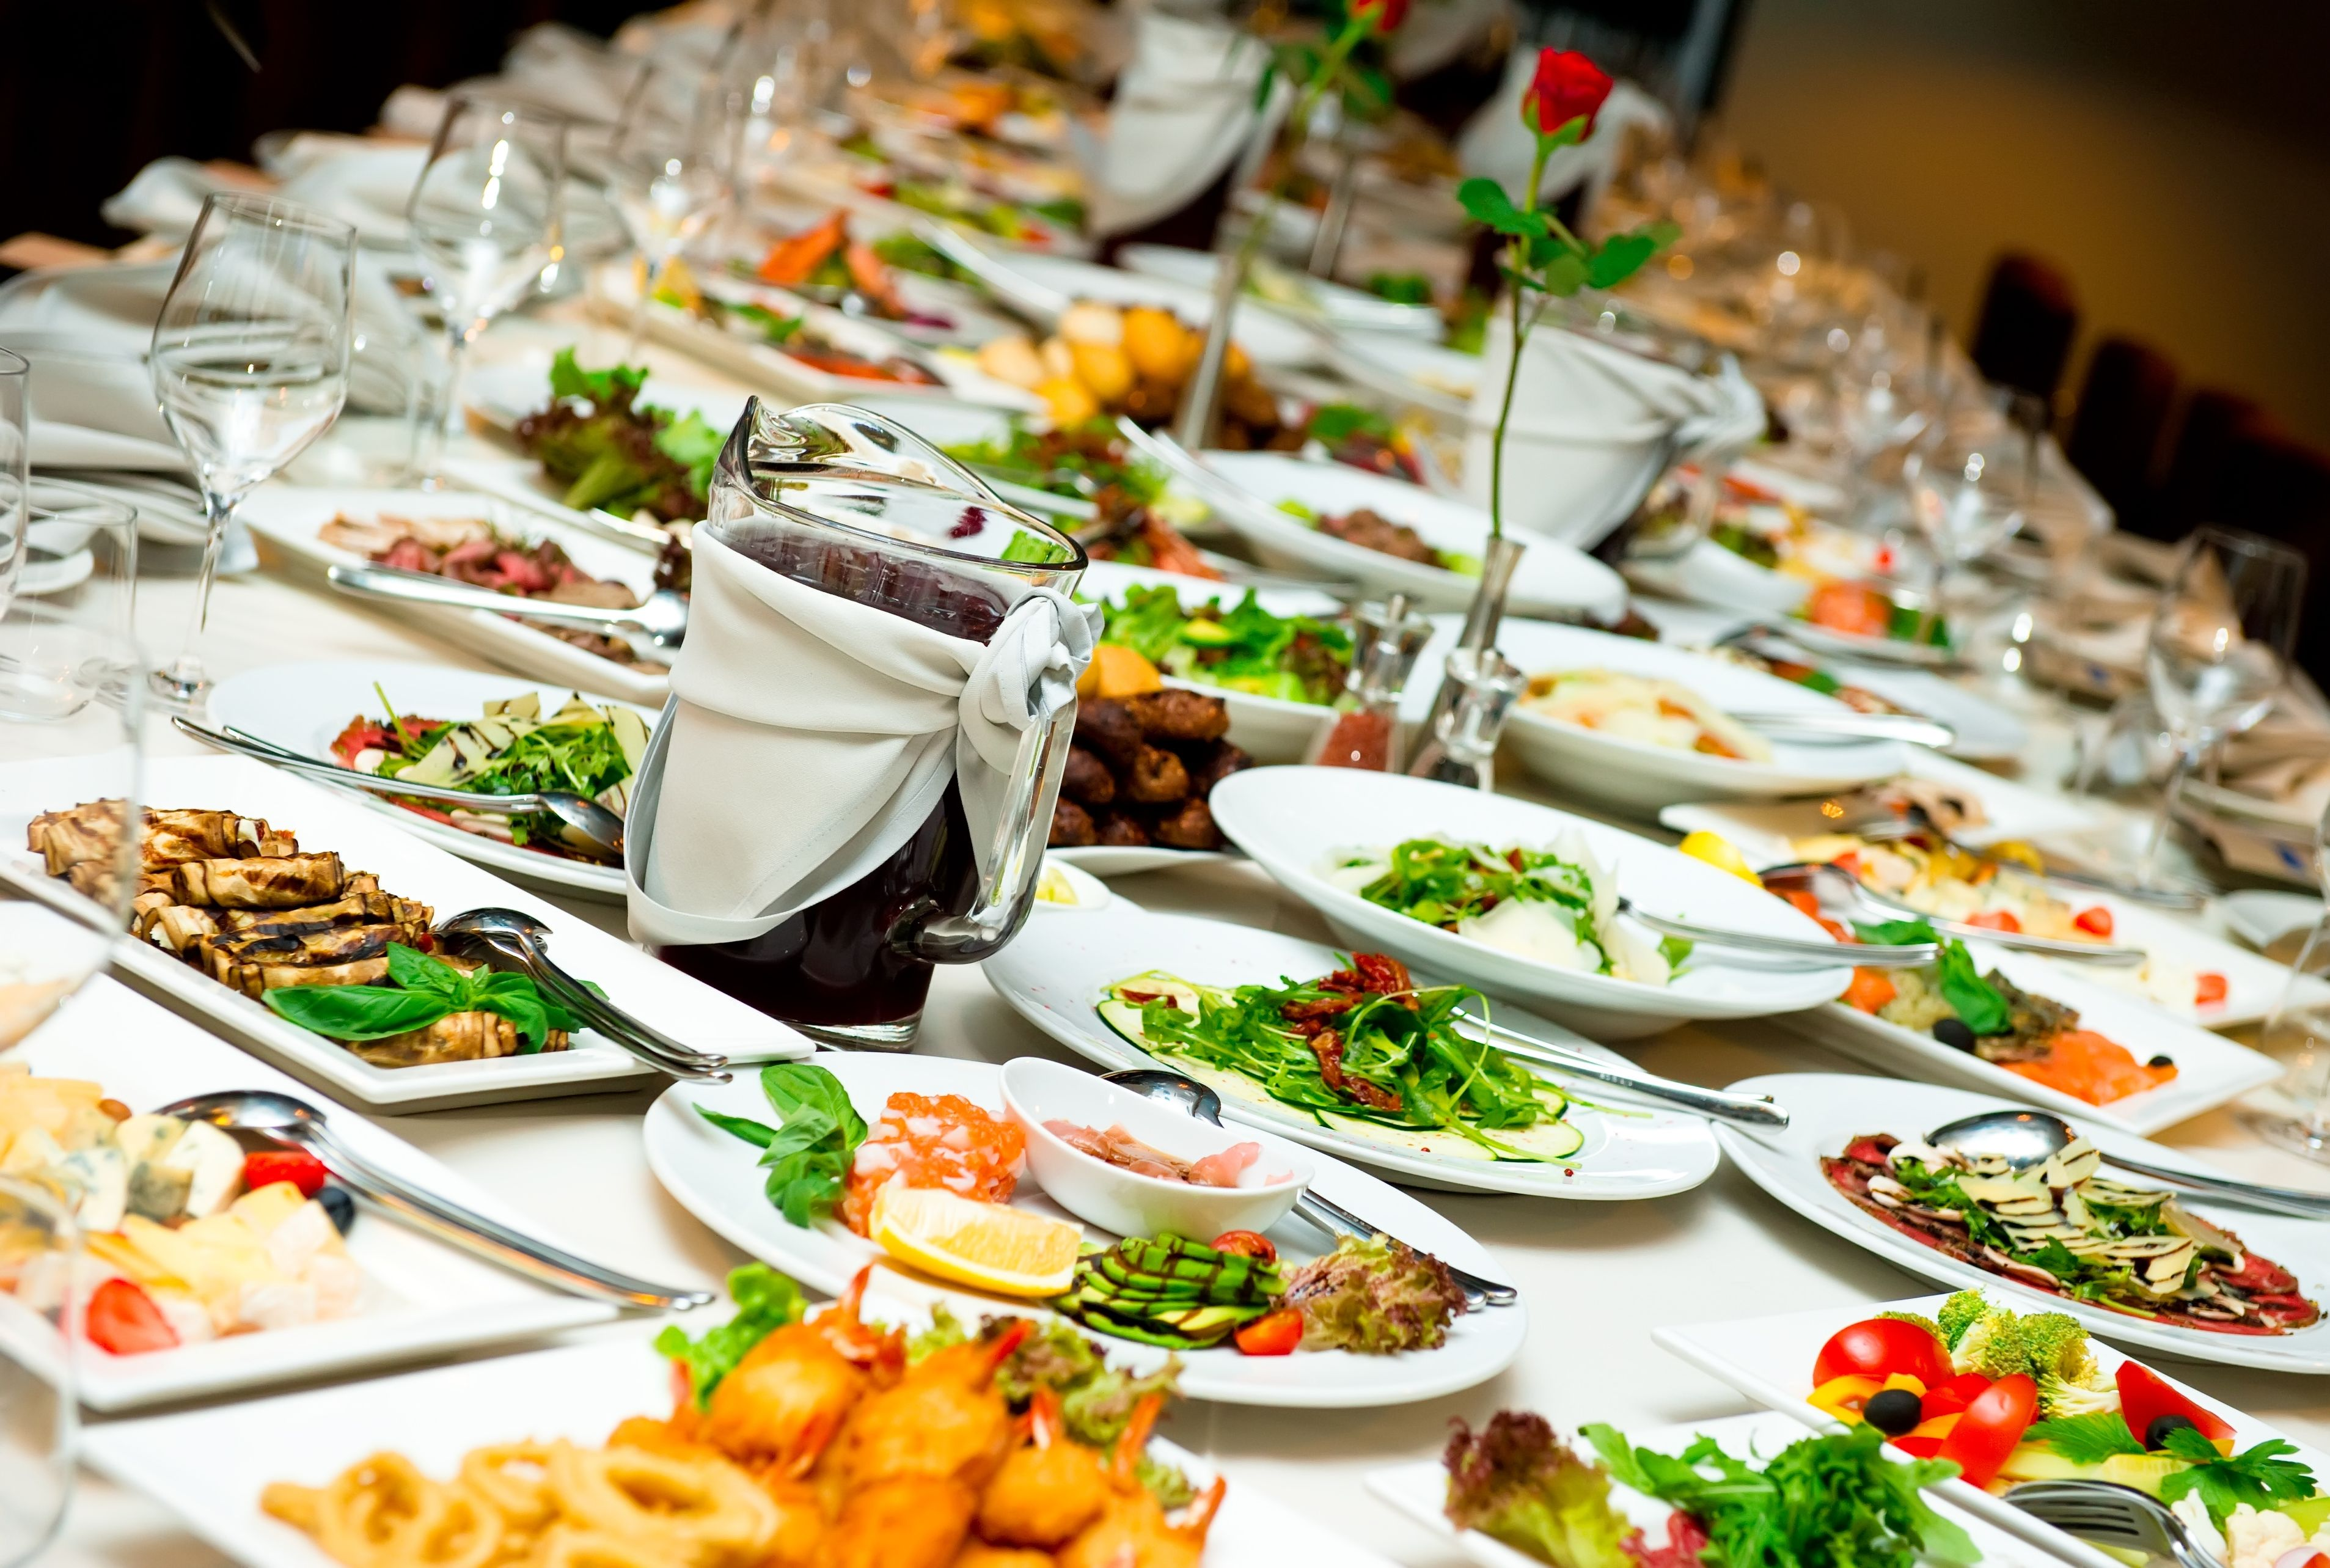 Local Event Catering Services In Kansas City Topeka Overland Park